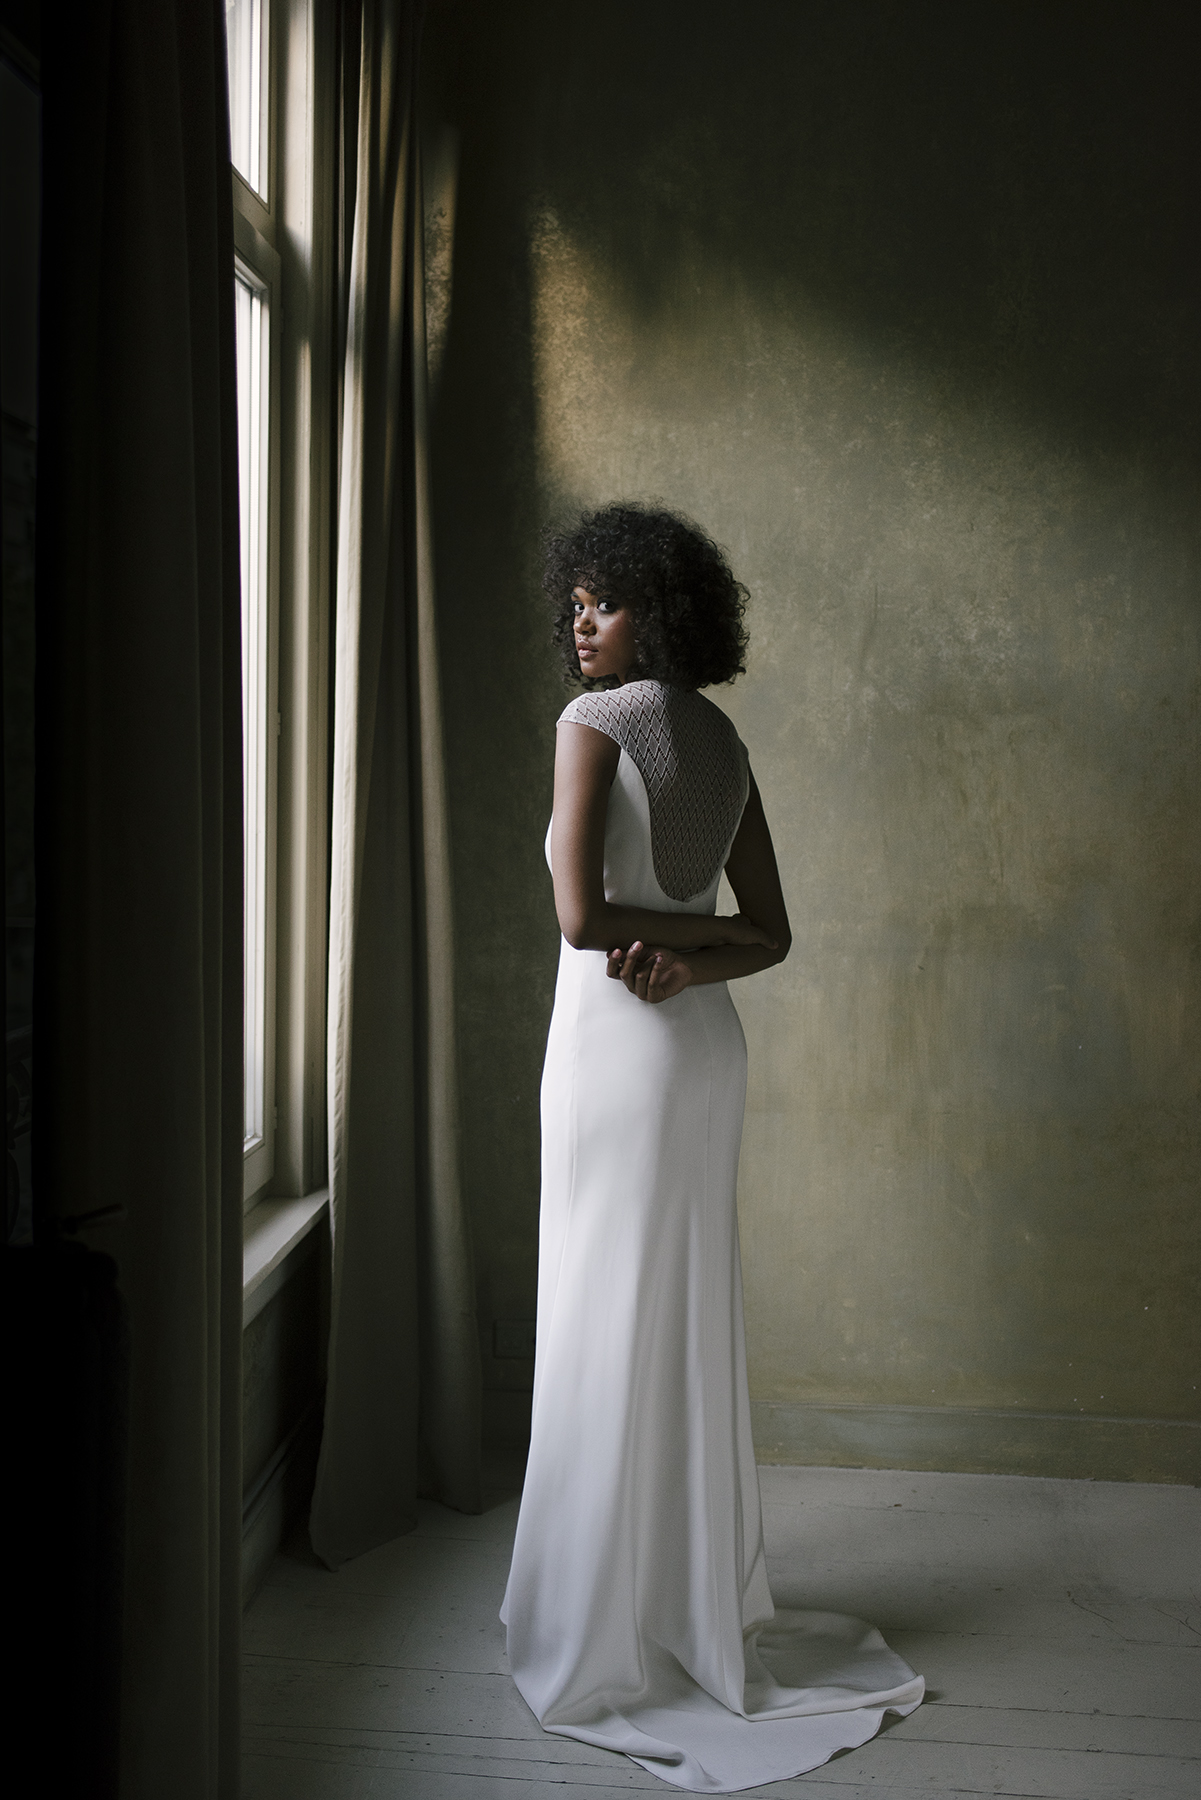 valentine-avoh-robe-mariee-marlene-wedding-dress-bruxelles-photo-elodie-timmermans-45.jpg